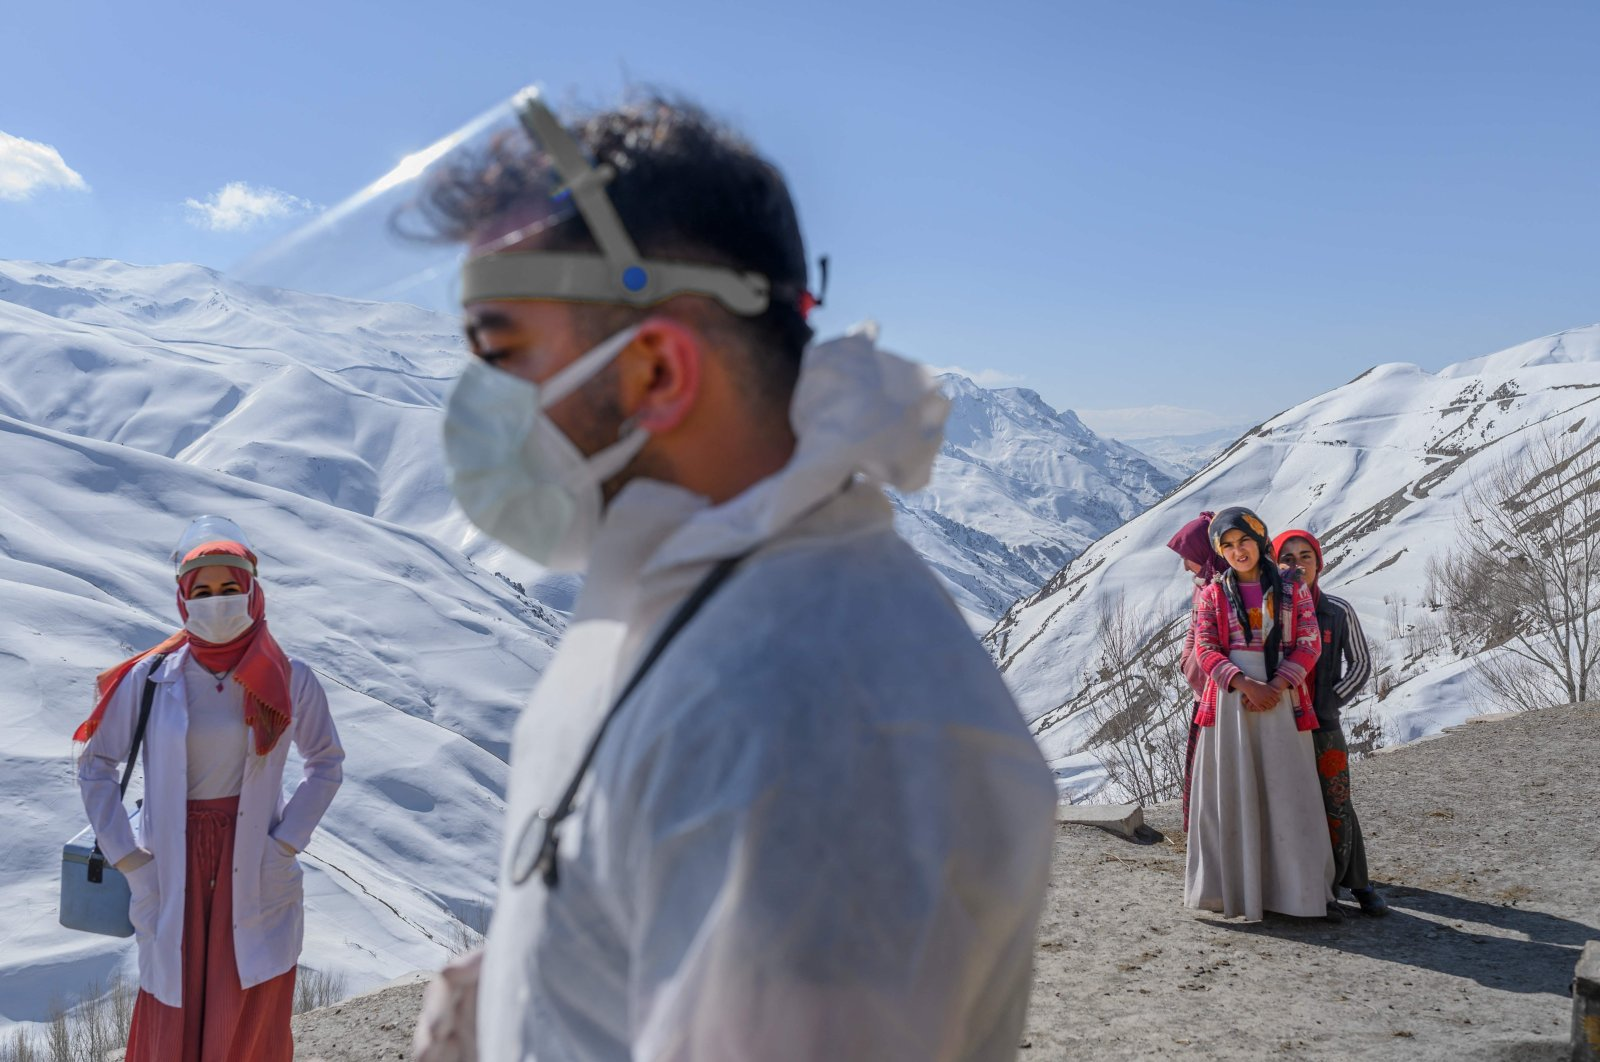 Doctor Sergen Saraçoğlu (C) and nurse Yıldız Ayten (L) from the Bahçesaray public hospital vaccination team arrive in the village of Güneyyamaç in Van province, eastern Turkey, Feb. 15, 2021, as part of an expedition to vaccinate residents of 65 years old or above with Sinovac's CoronaVac COVID-19 vaccine. (AFP Photo)